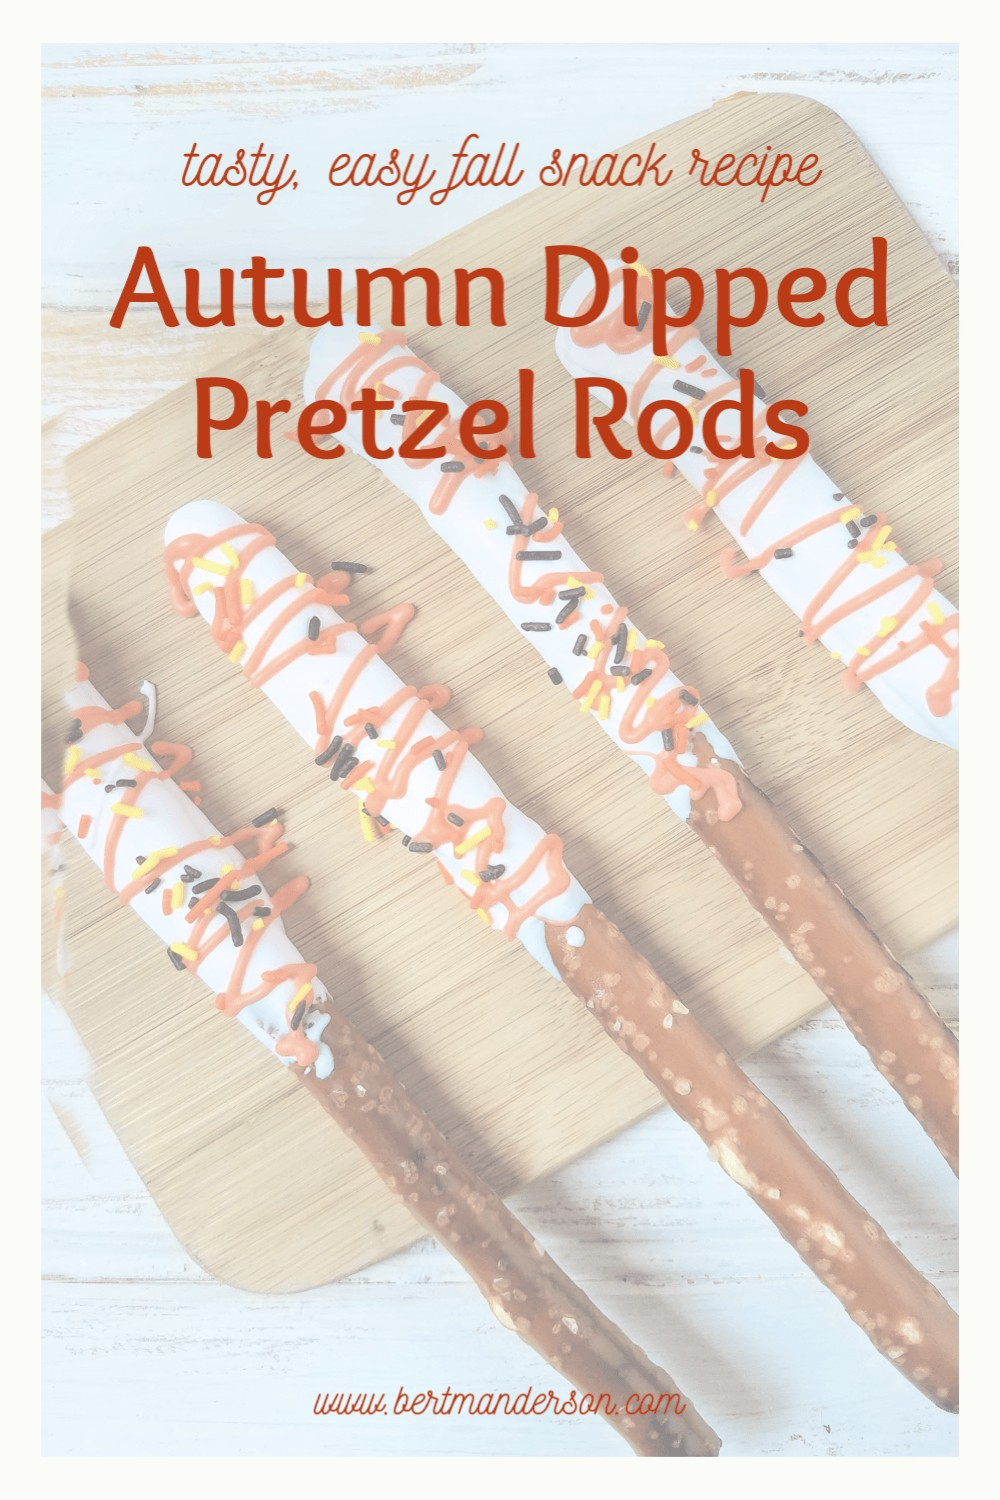 Autumn dipped pretzel rods fall snack - The easiest snack to amp up your fall gathering! #fallsnacks #recipes #kidfriendly #halloweensnacks